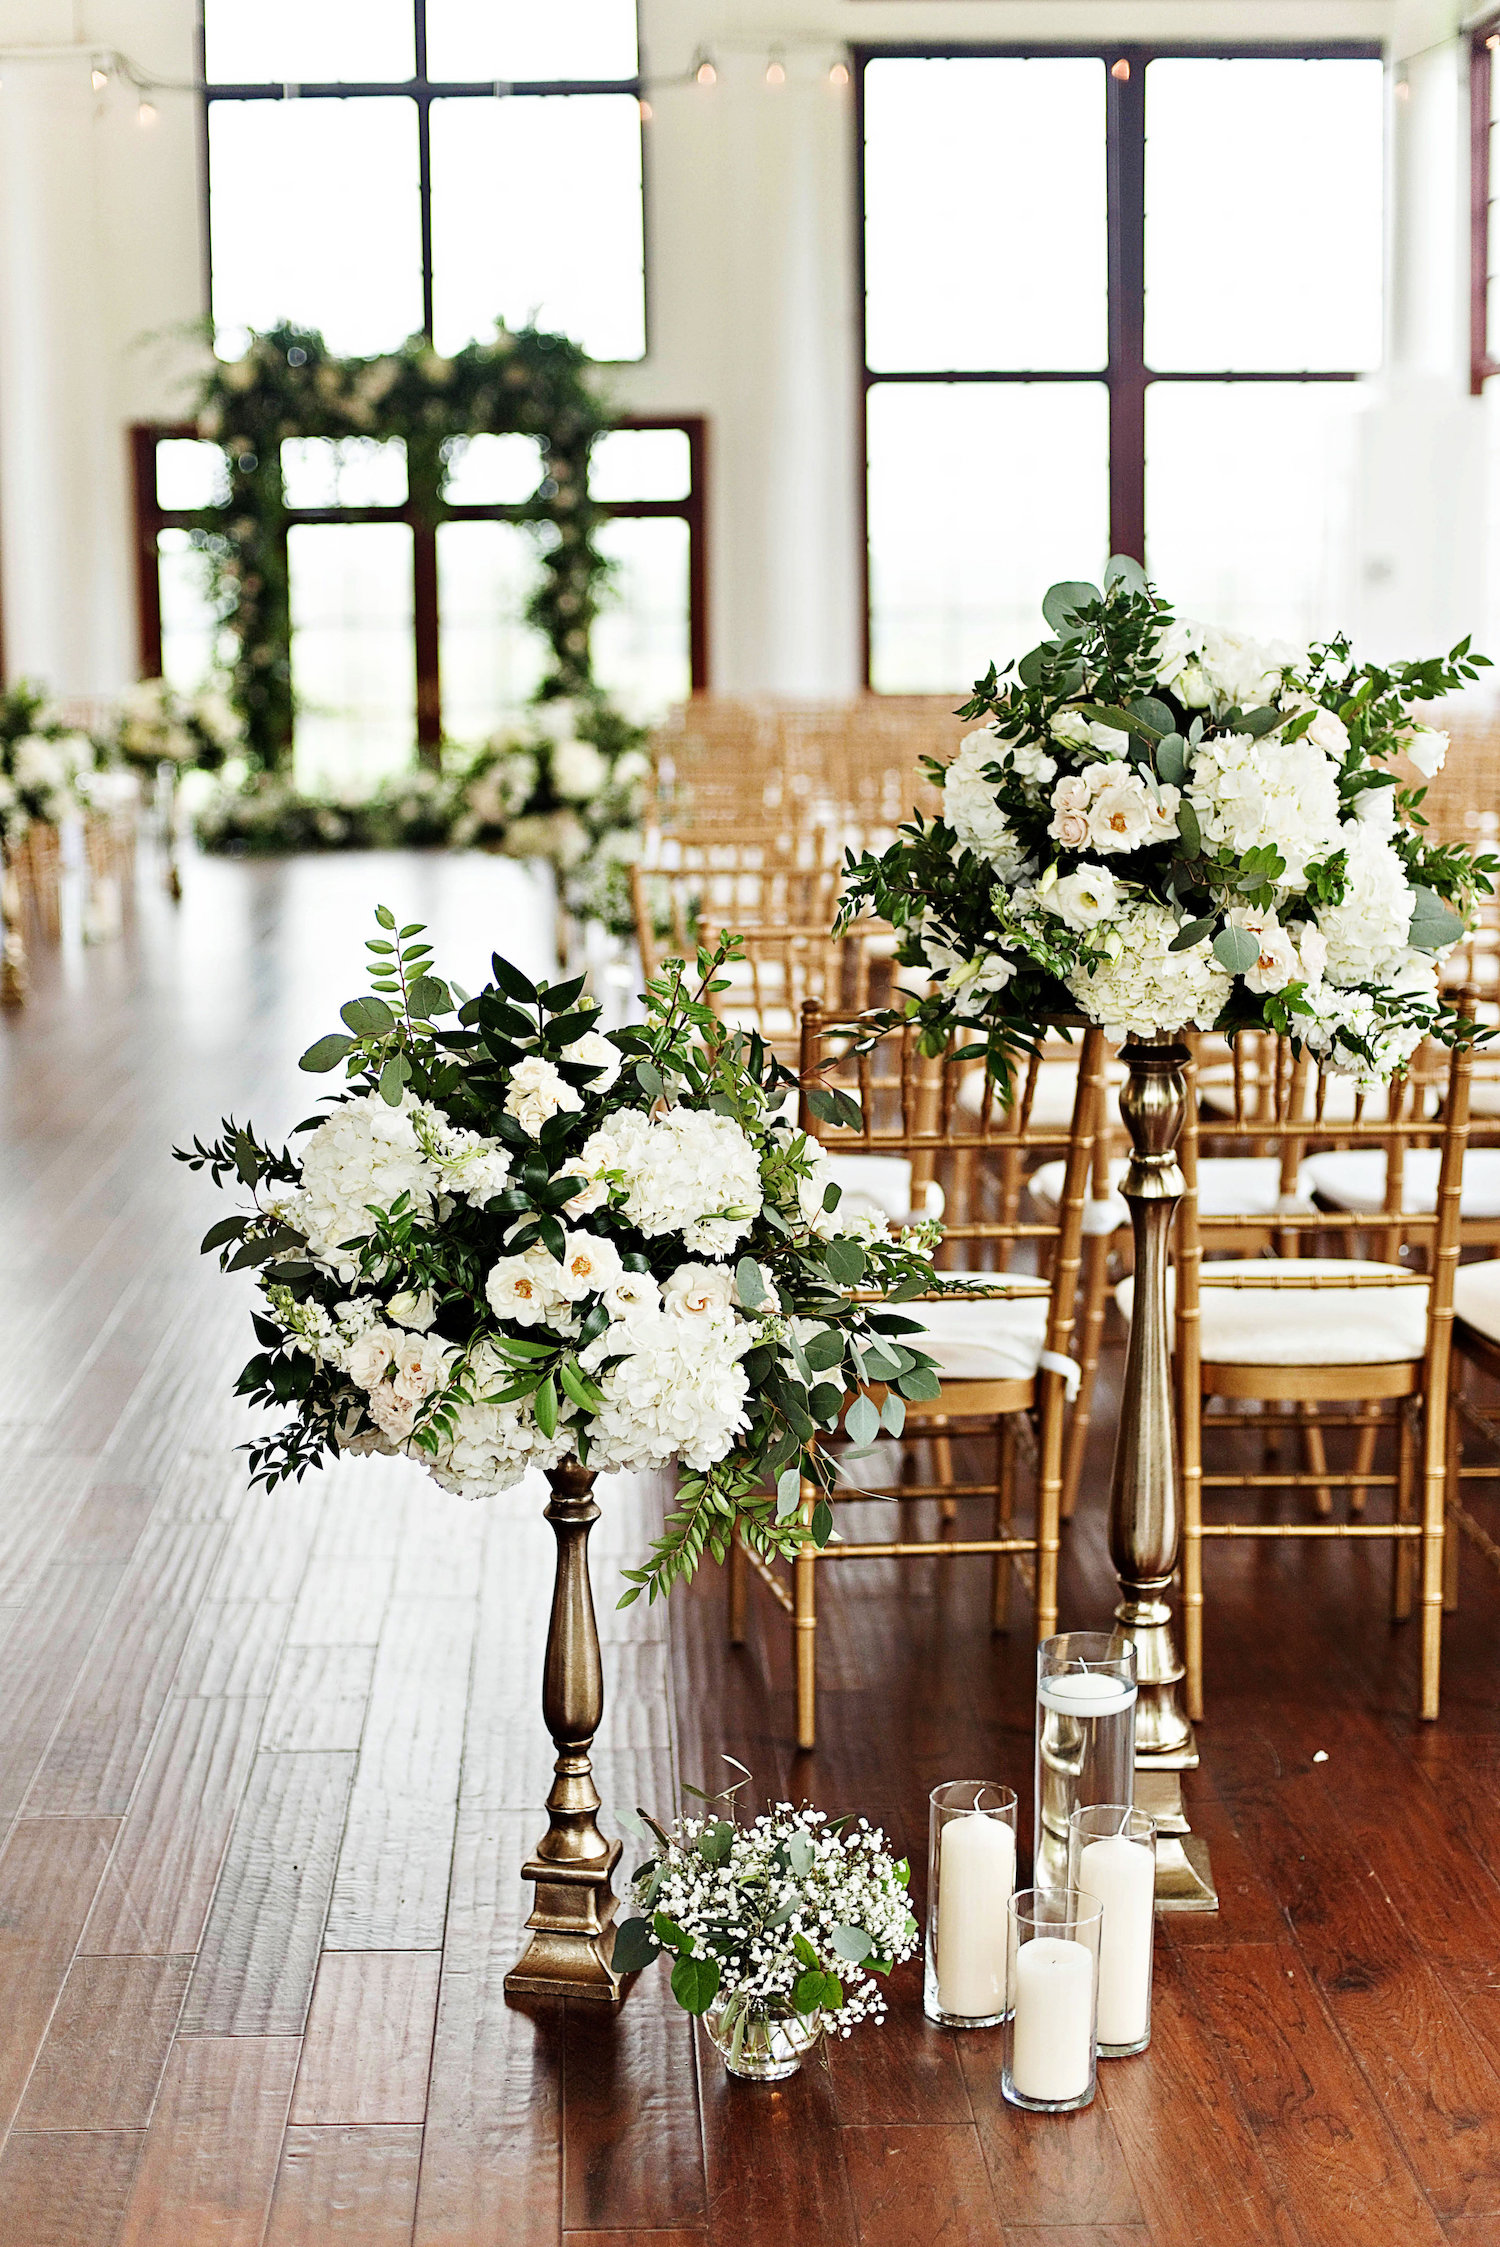 Re-purposed centerpieces helped to add the missing garden element to this inside ceremony planned for the outdoors. Photography by the Photography Smiths at Raspberry Plain Manor.